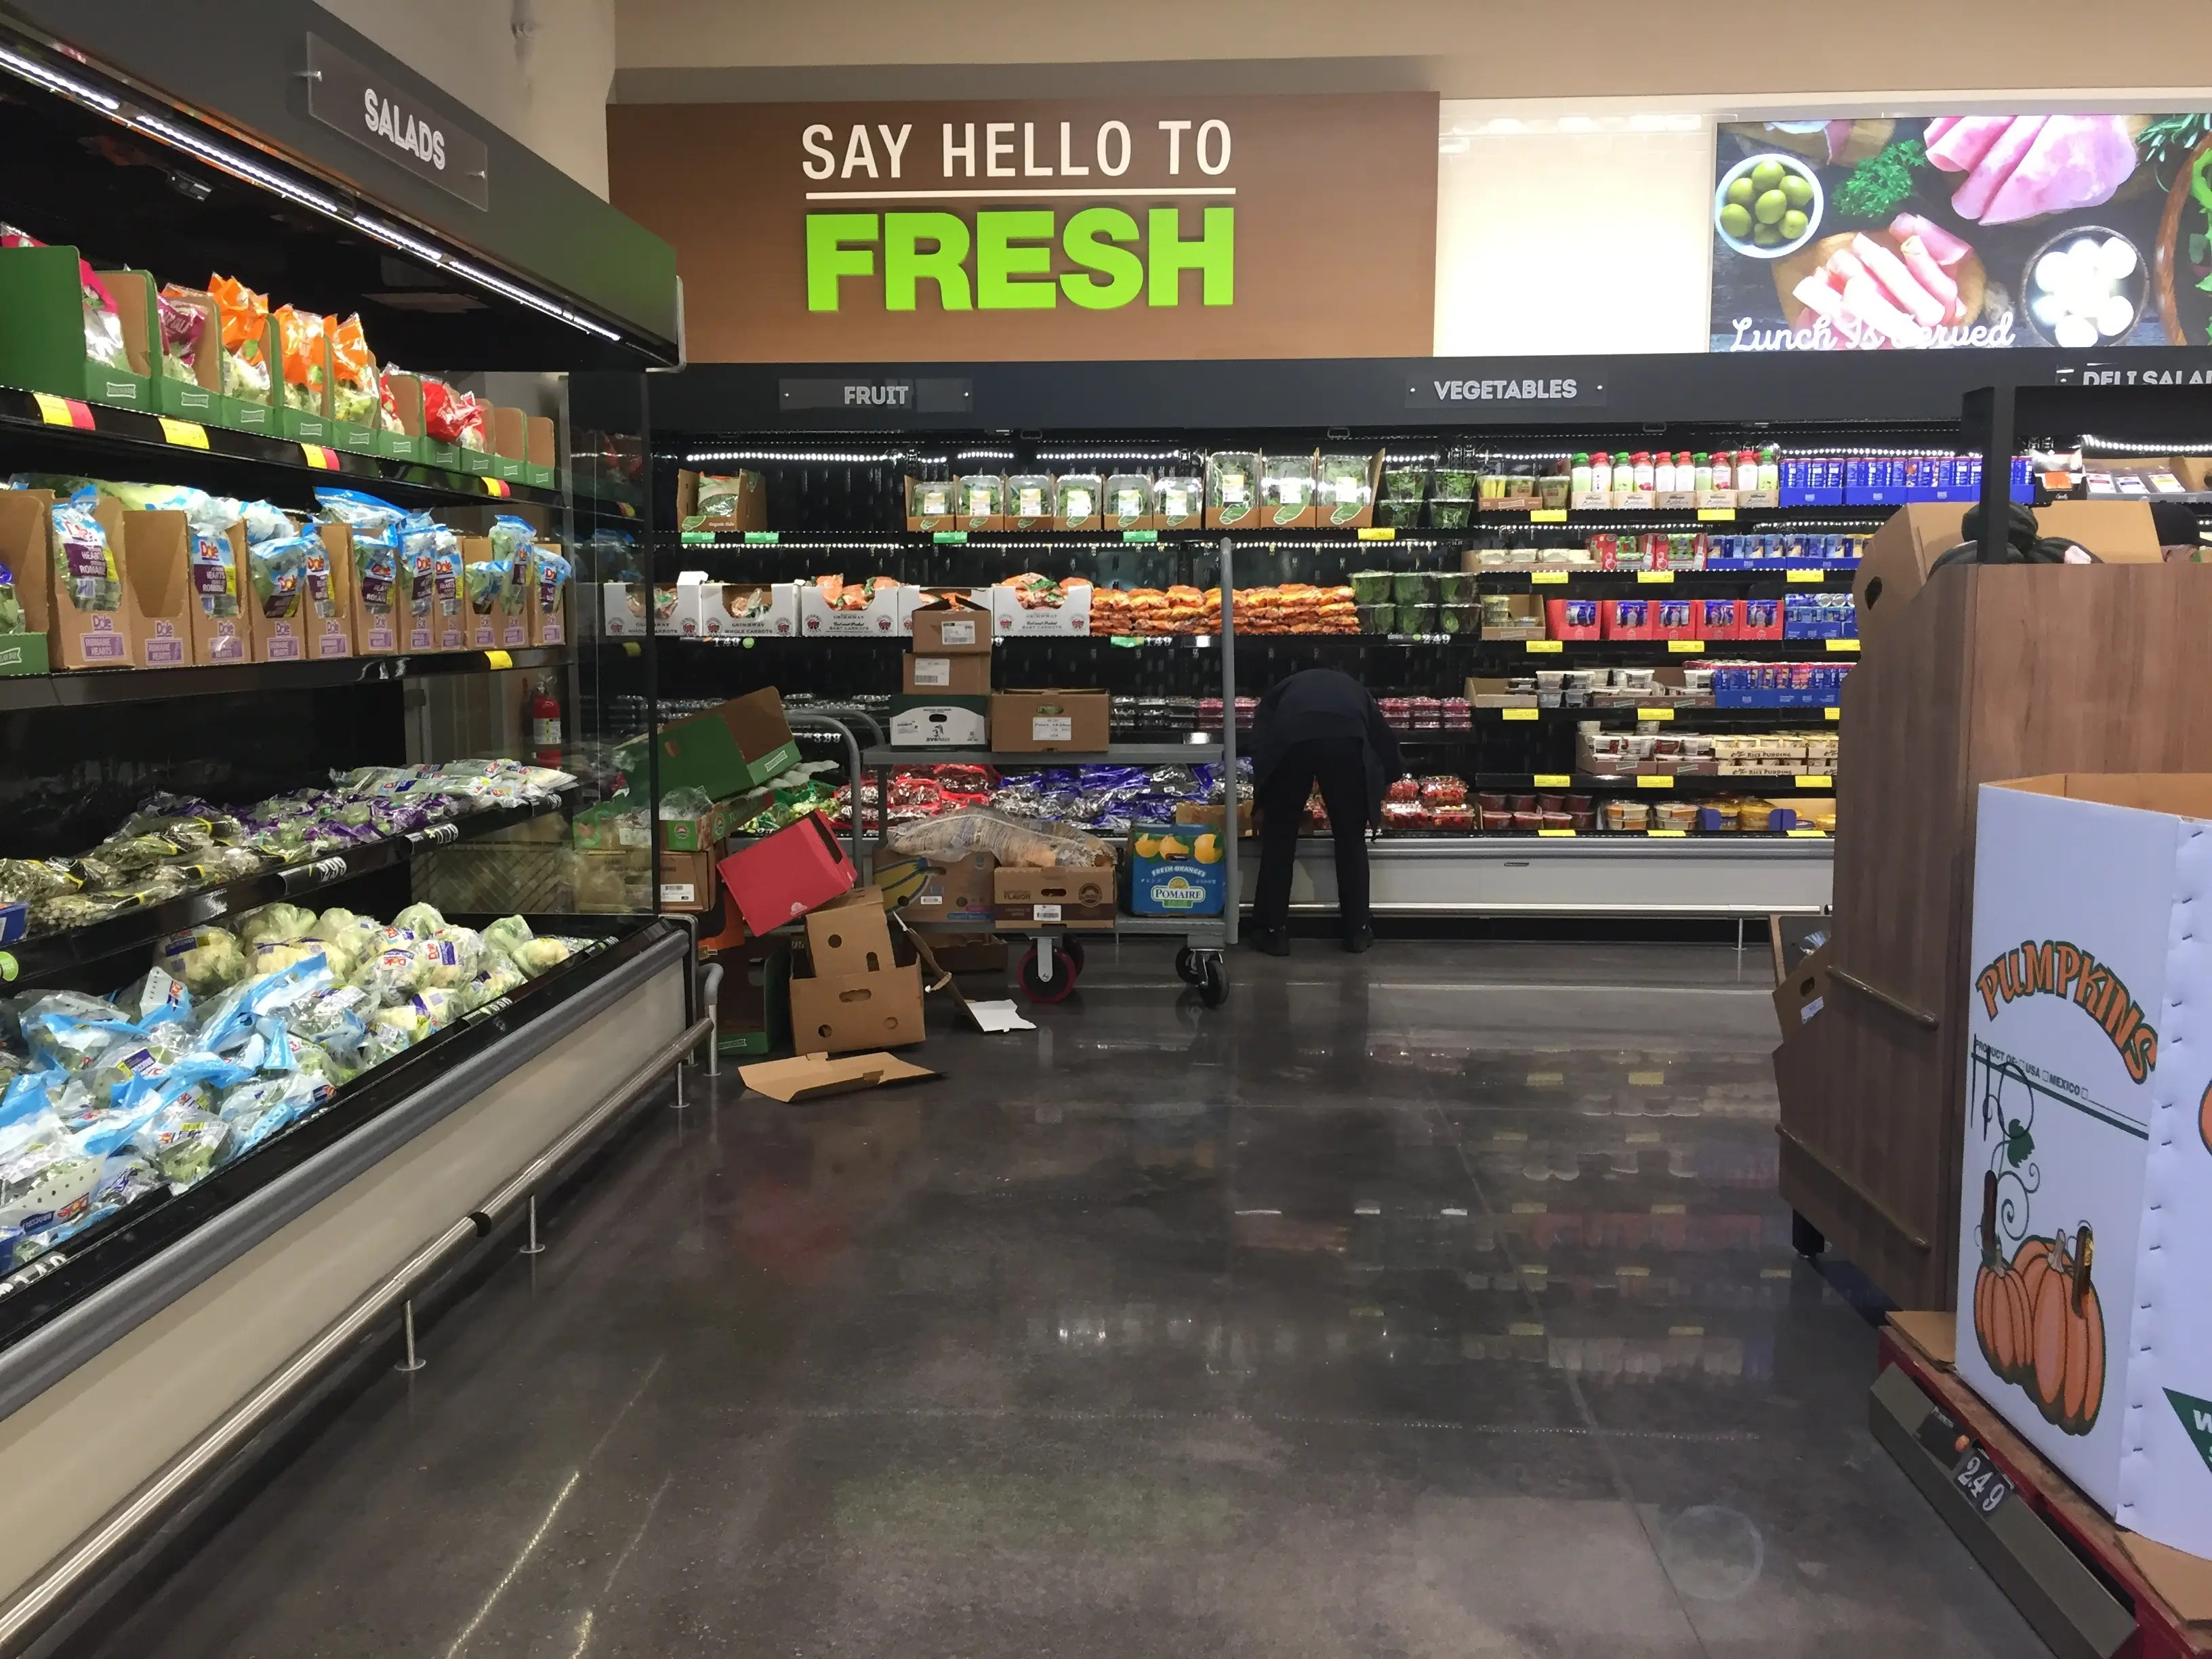 At the new Aldi, there's a large refrigerated section devoted to produce.